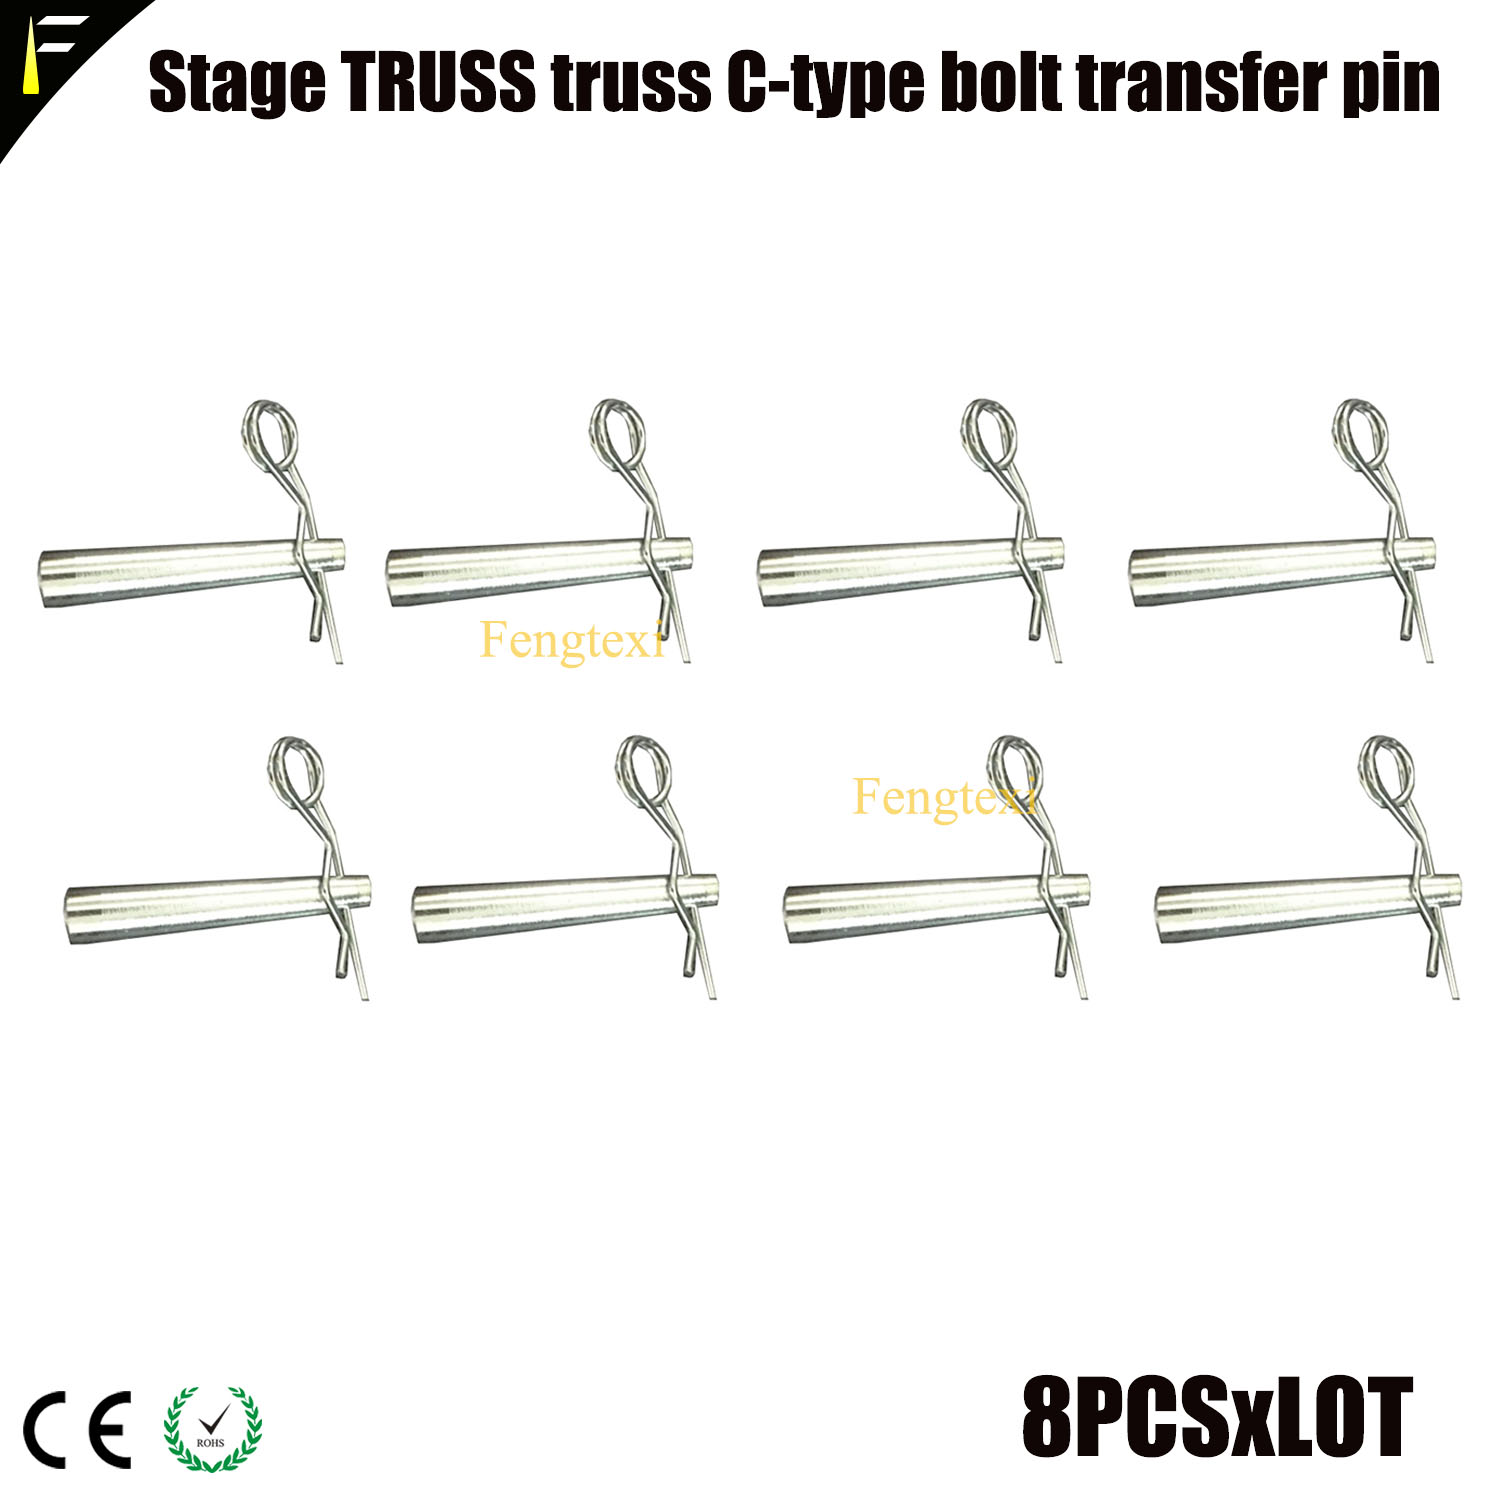 8pcs Stage Truss Latch Bolt Pin Thumb Lock C Type Buckle Light Machine Truss Frame Connector Parts Truss Sleeve Pin Accessories